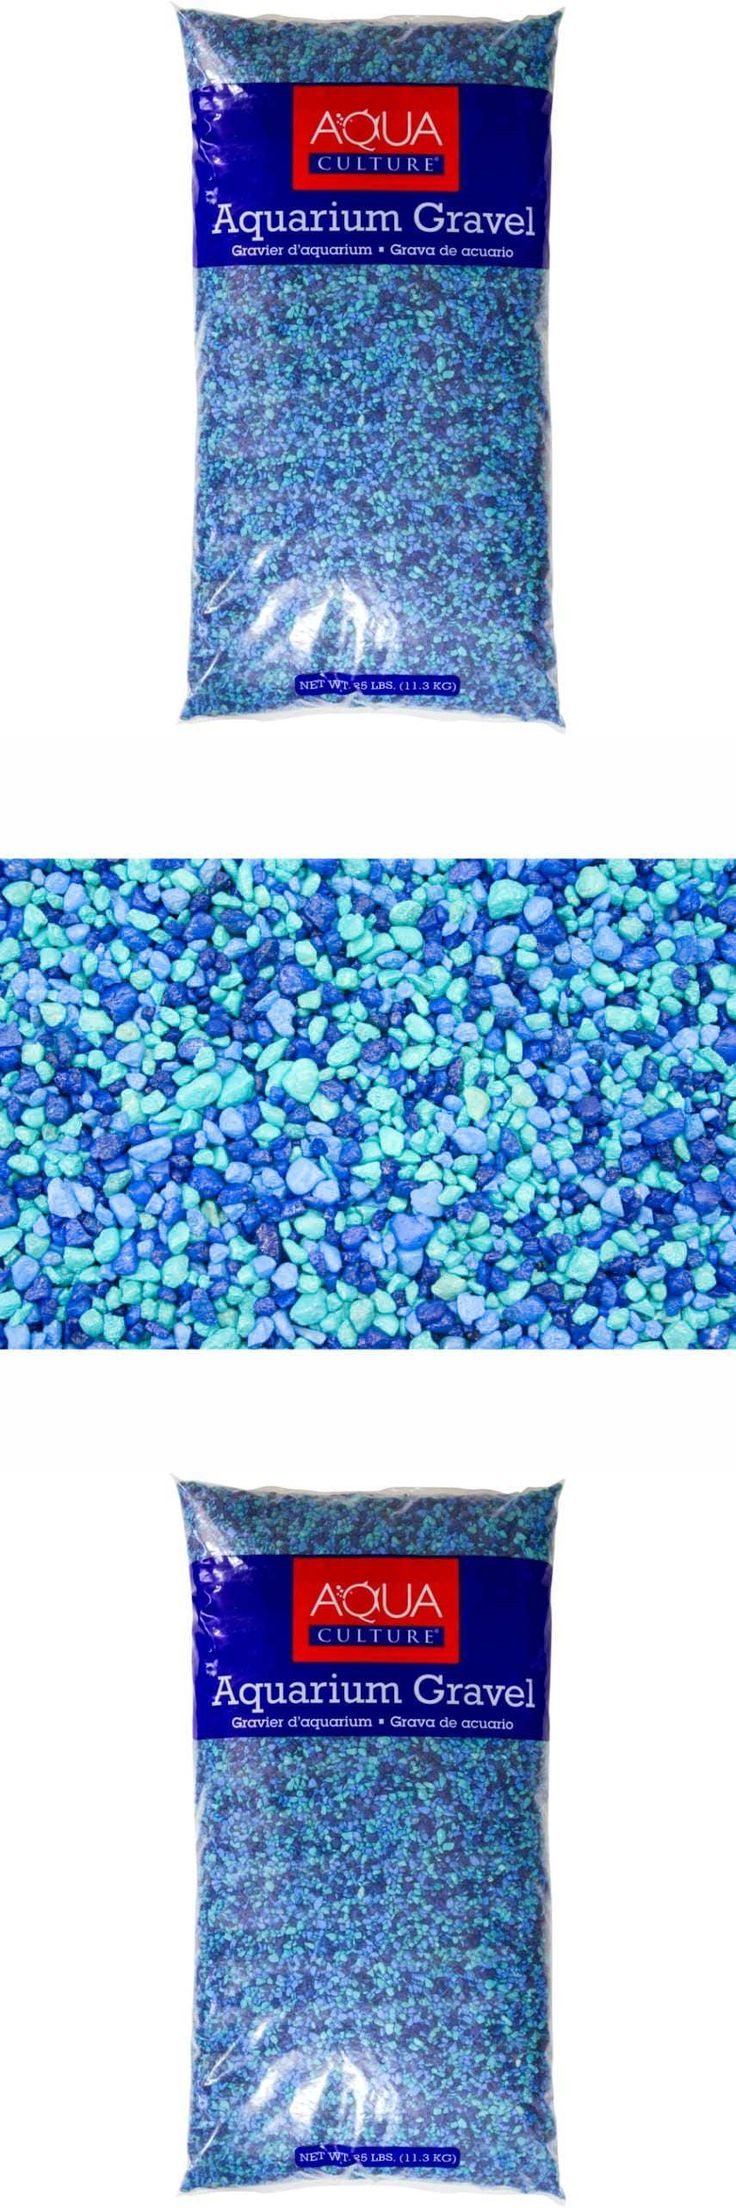 Gravel and Substrate 46439: 25Lb Blue Aquarium Gravel Colorful Epoxy Coated Fish Tank Accessory Surface New -> BUY IT NOW ONLY: $30.44 on eBay!